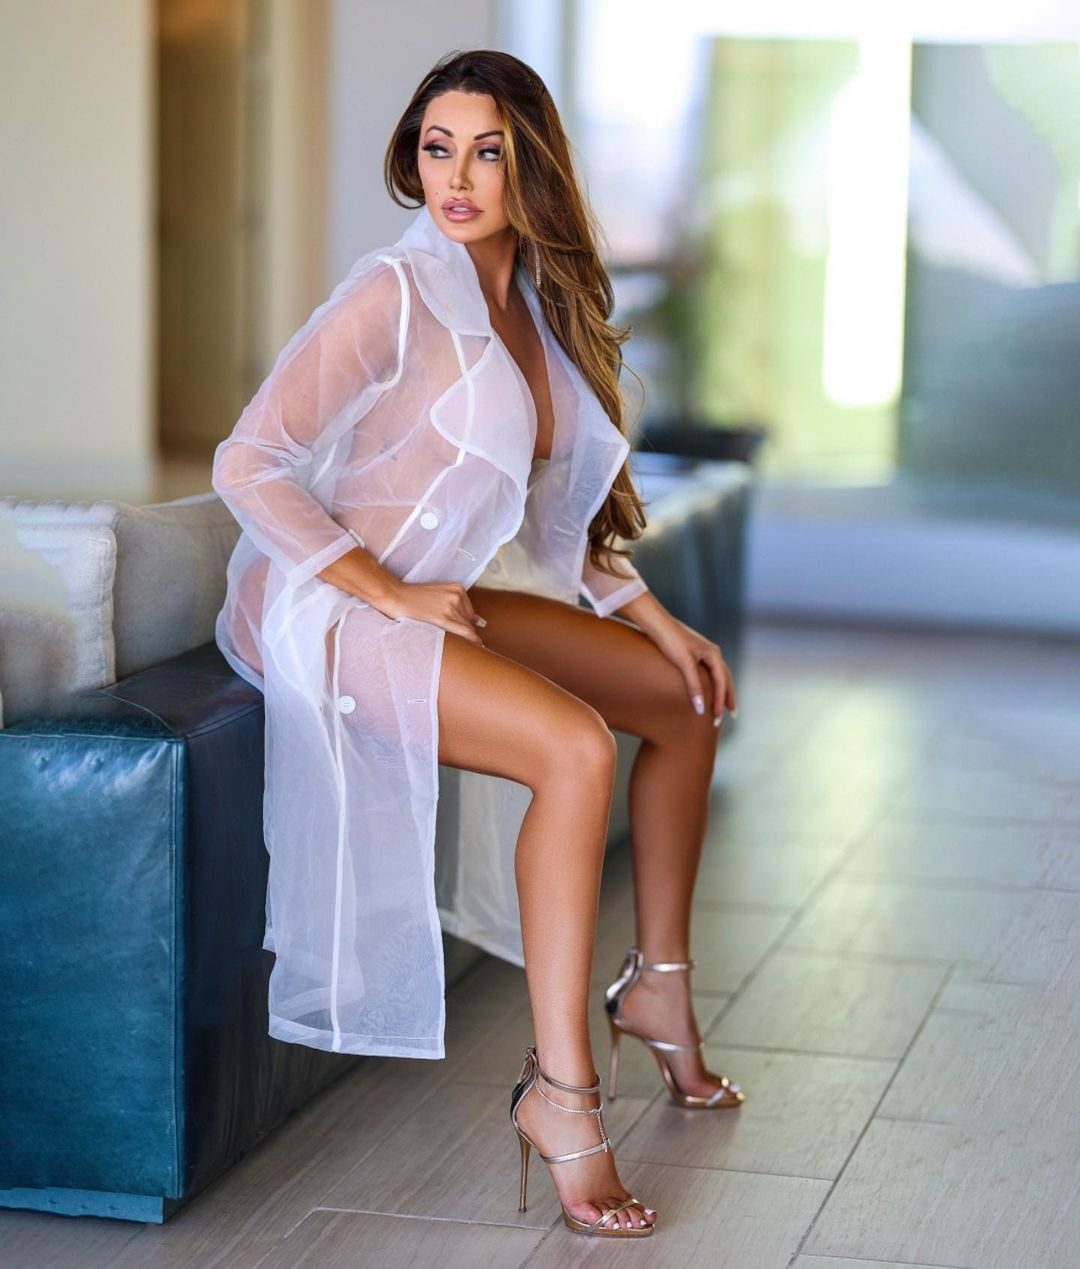 Holly Sonders changed her career turned into a sexy model 2